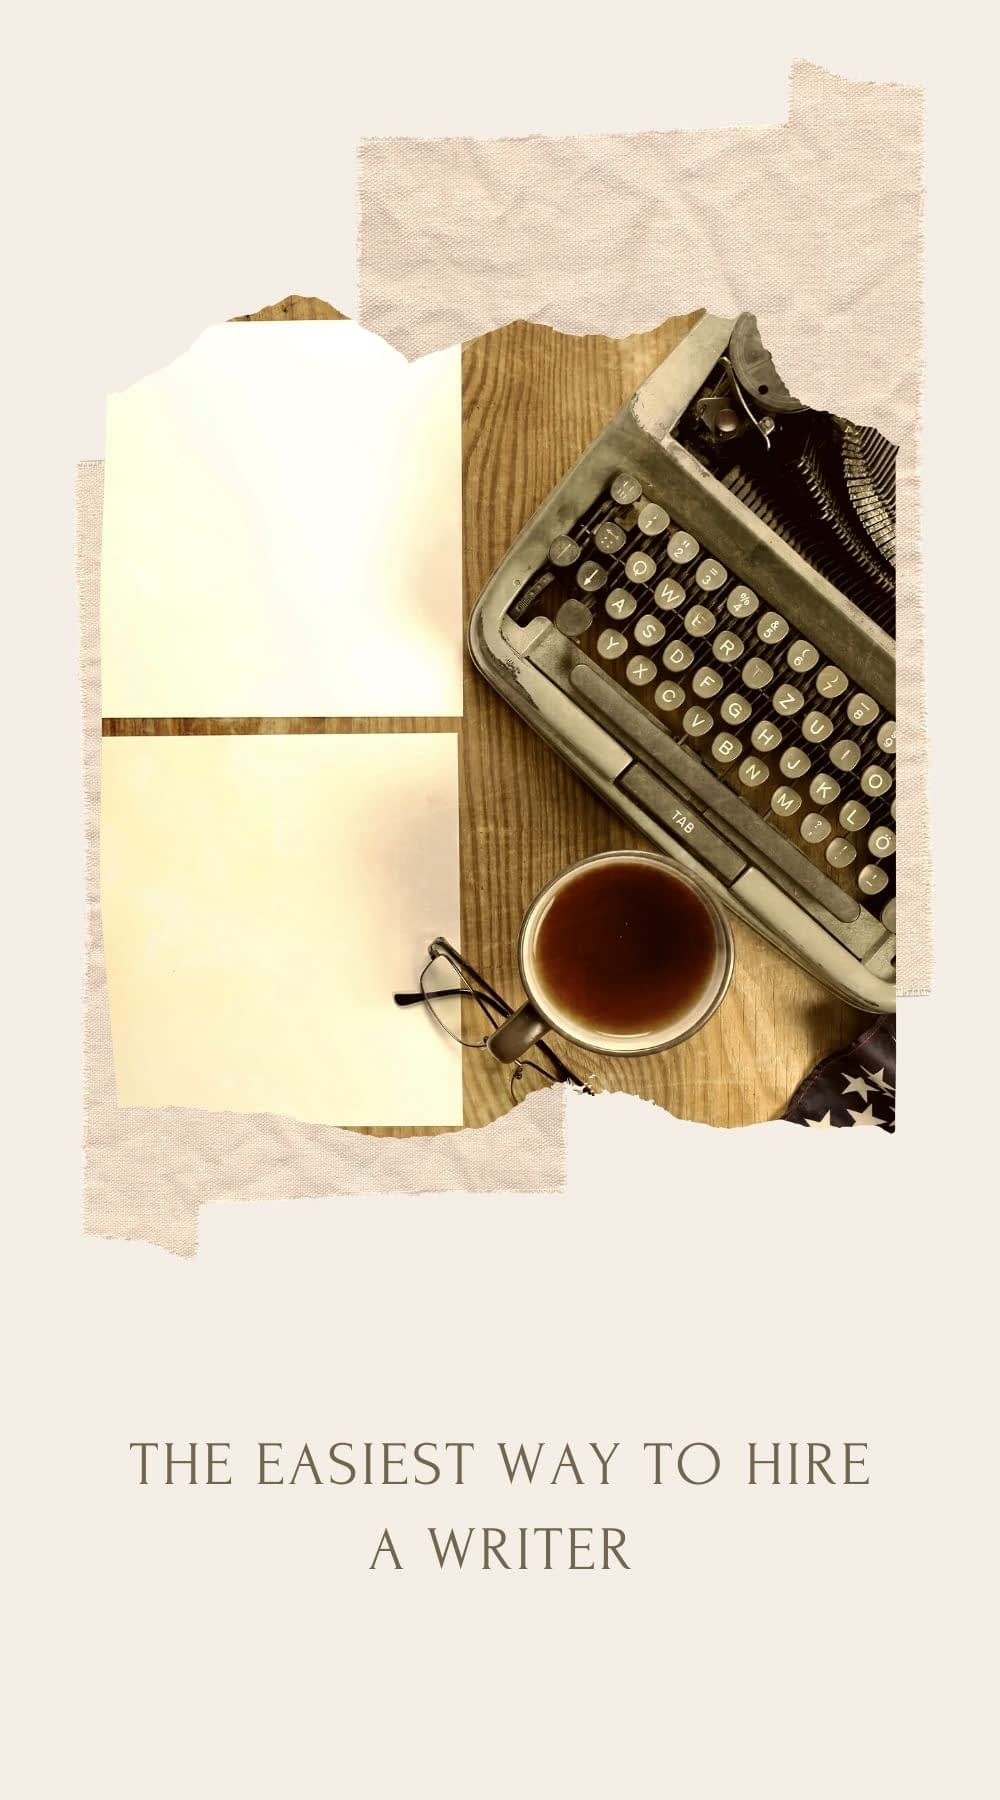 Old typerwriter and a cup of coffe